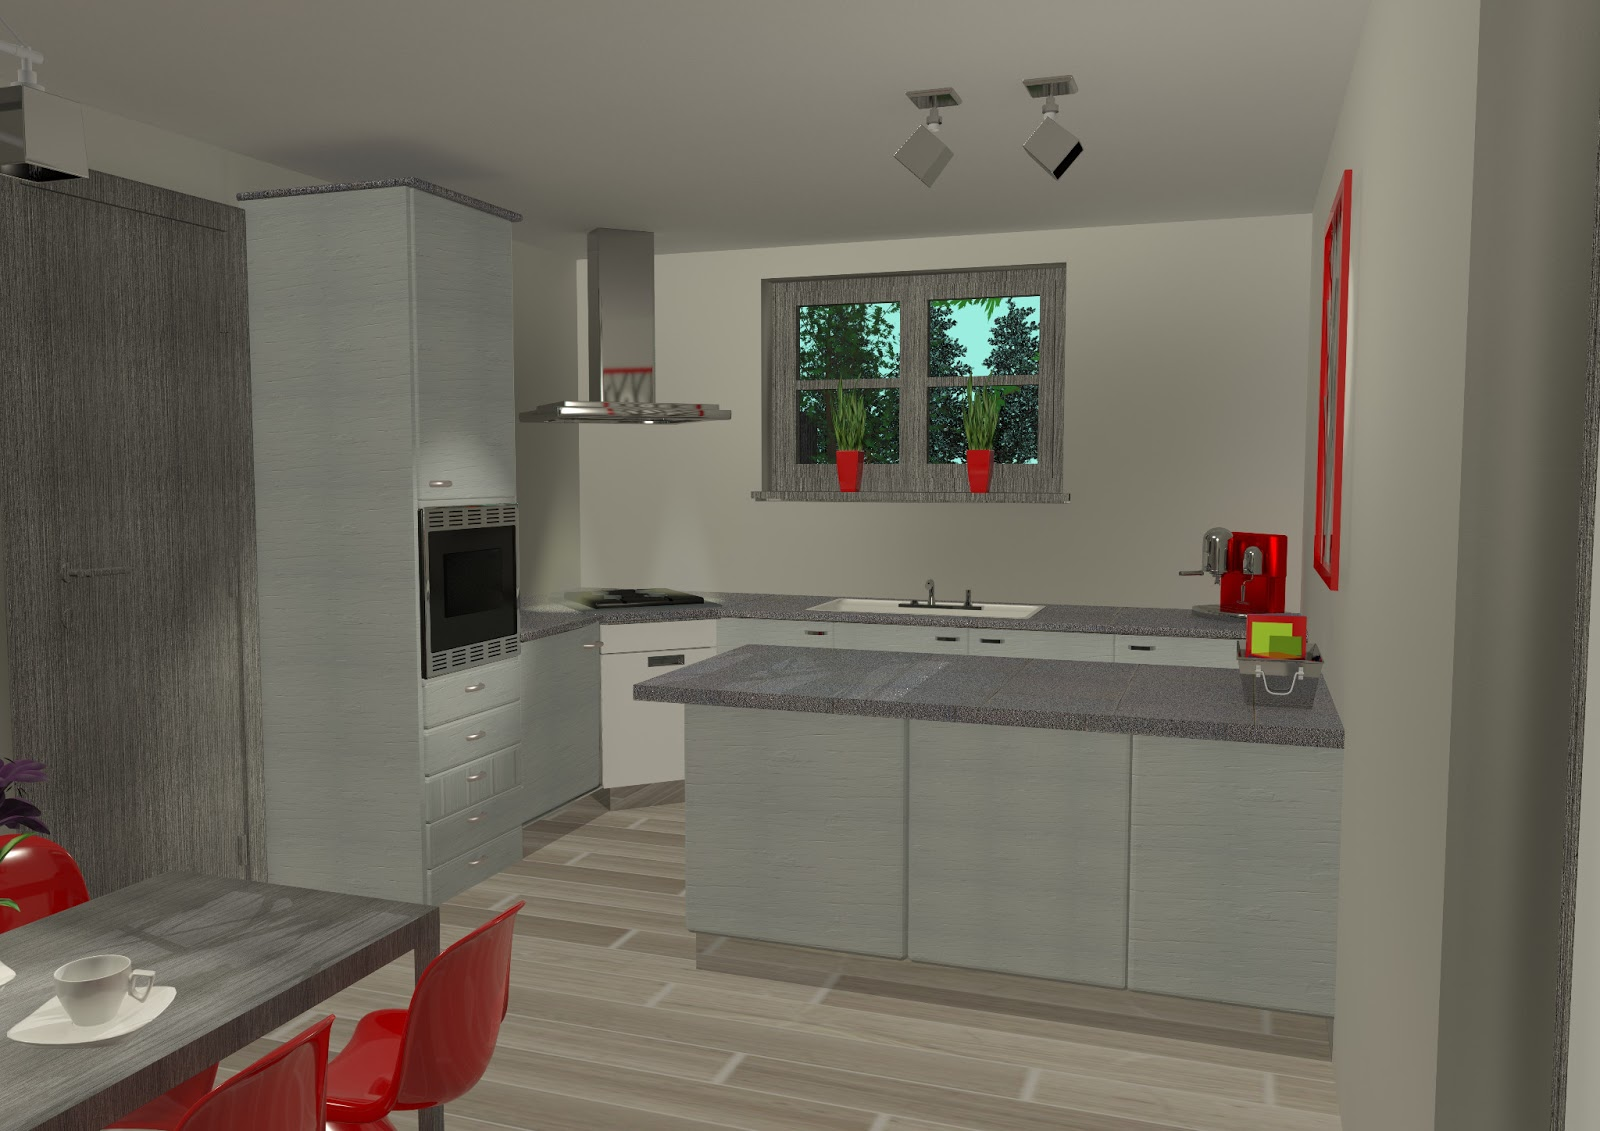 Interieur design visualisatie 3dstudiomax for Interieur opleiding